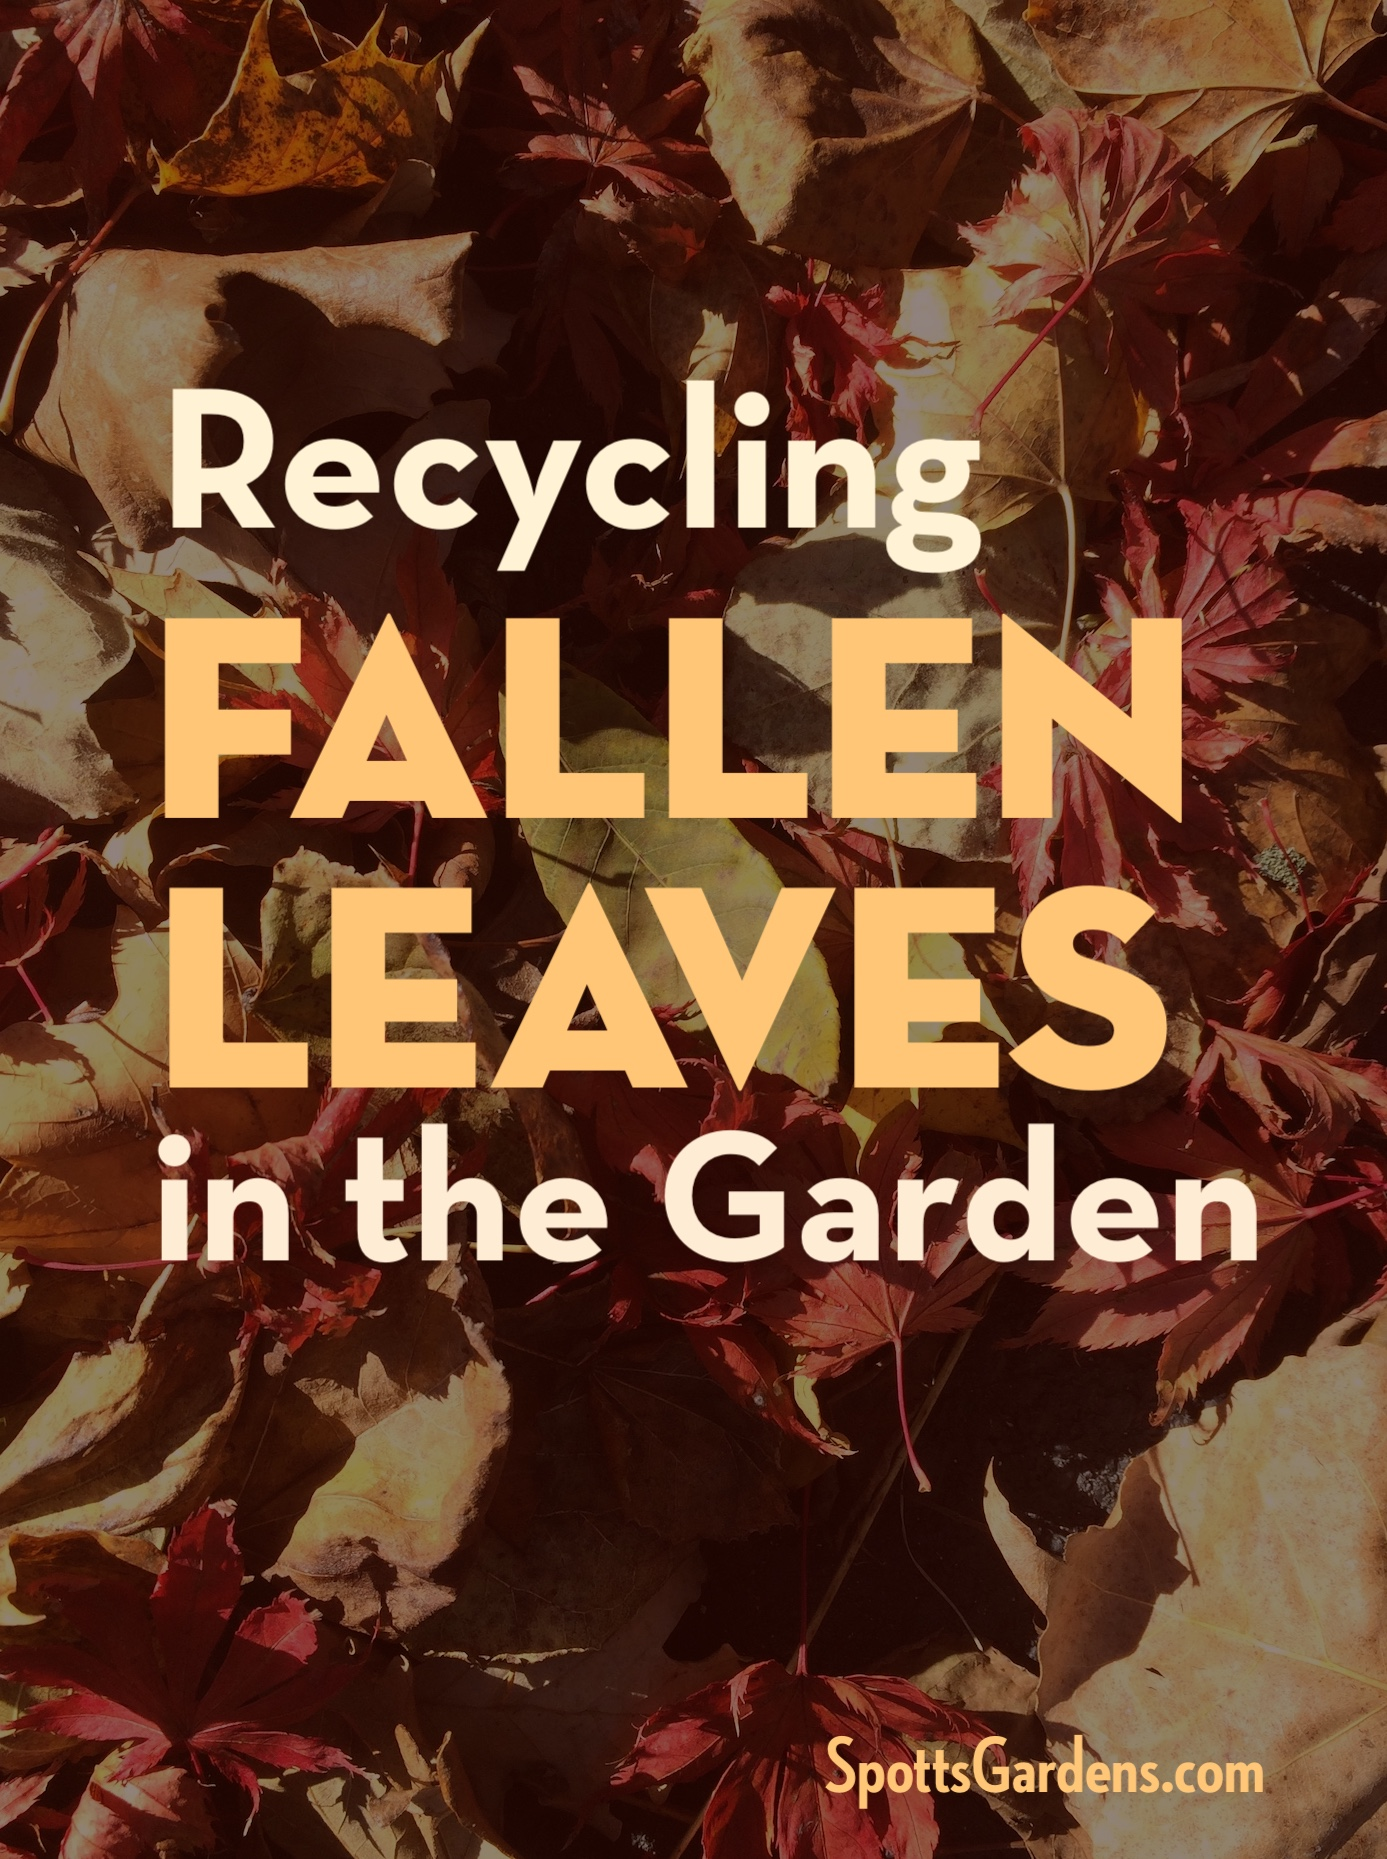 Recycling fallen leaves in the garden